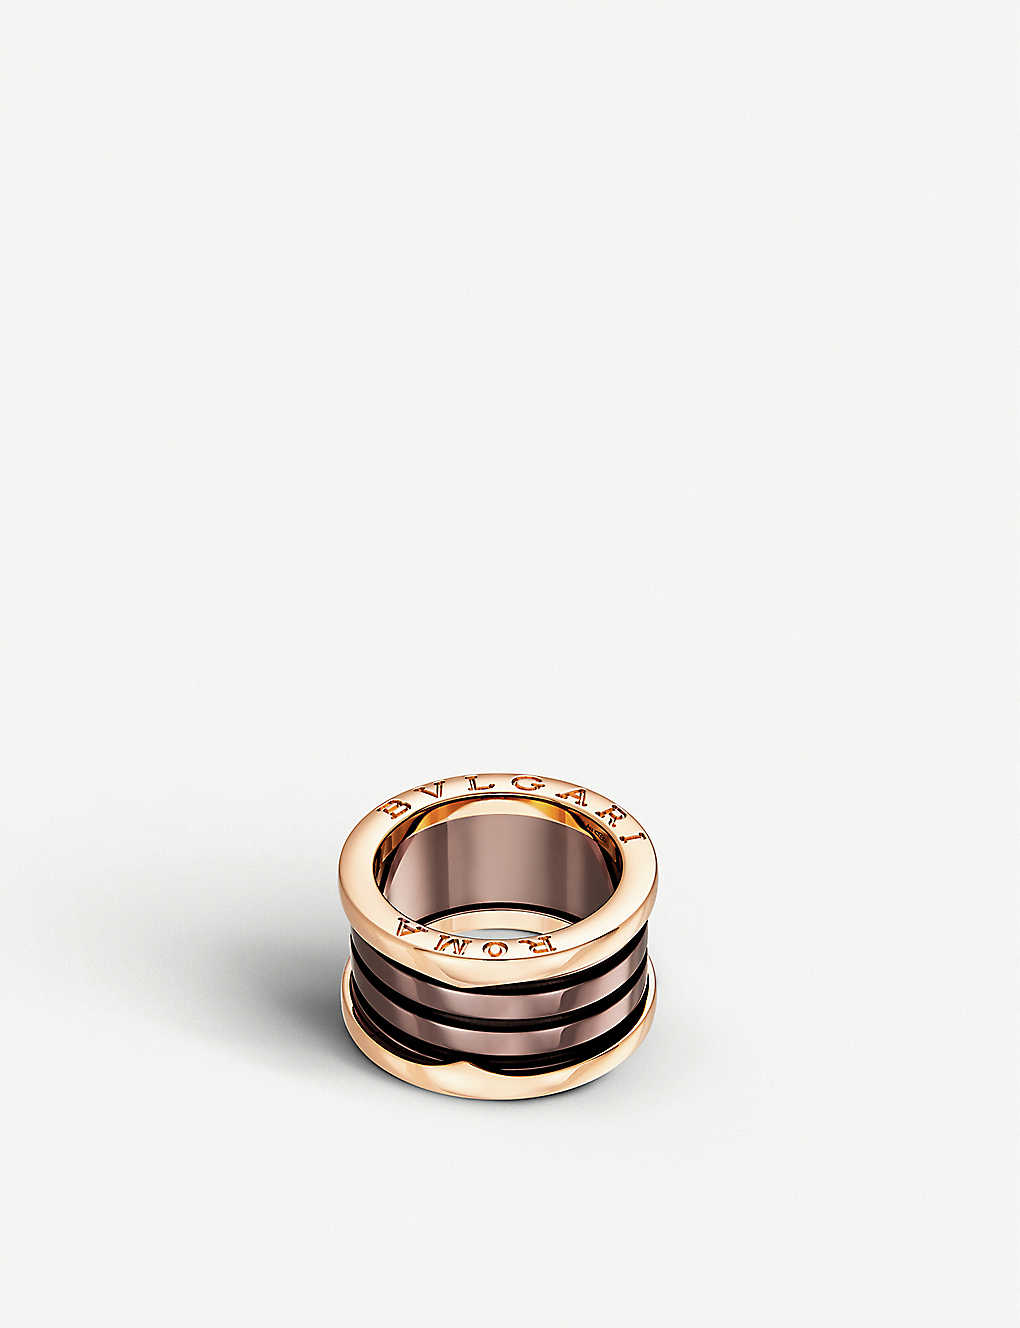 ca77d5628d70e B.zero1 Roma four-band 18kt pink-gold and bronze ceramic ring